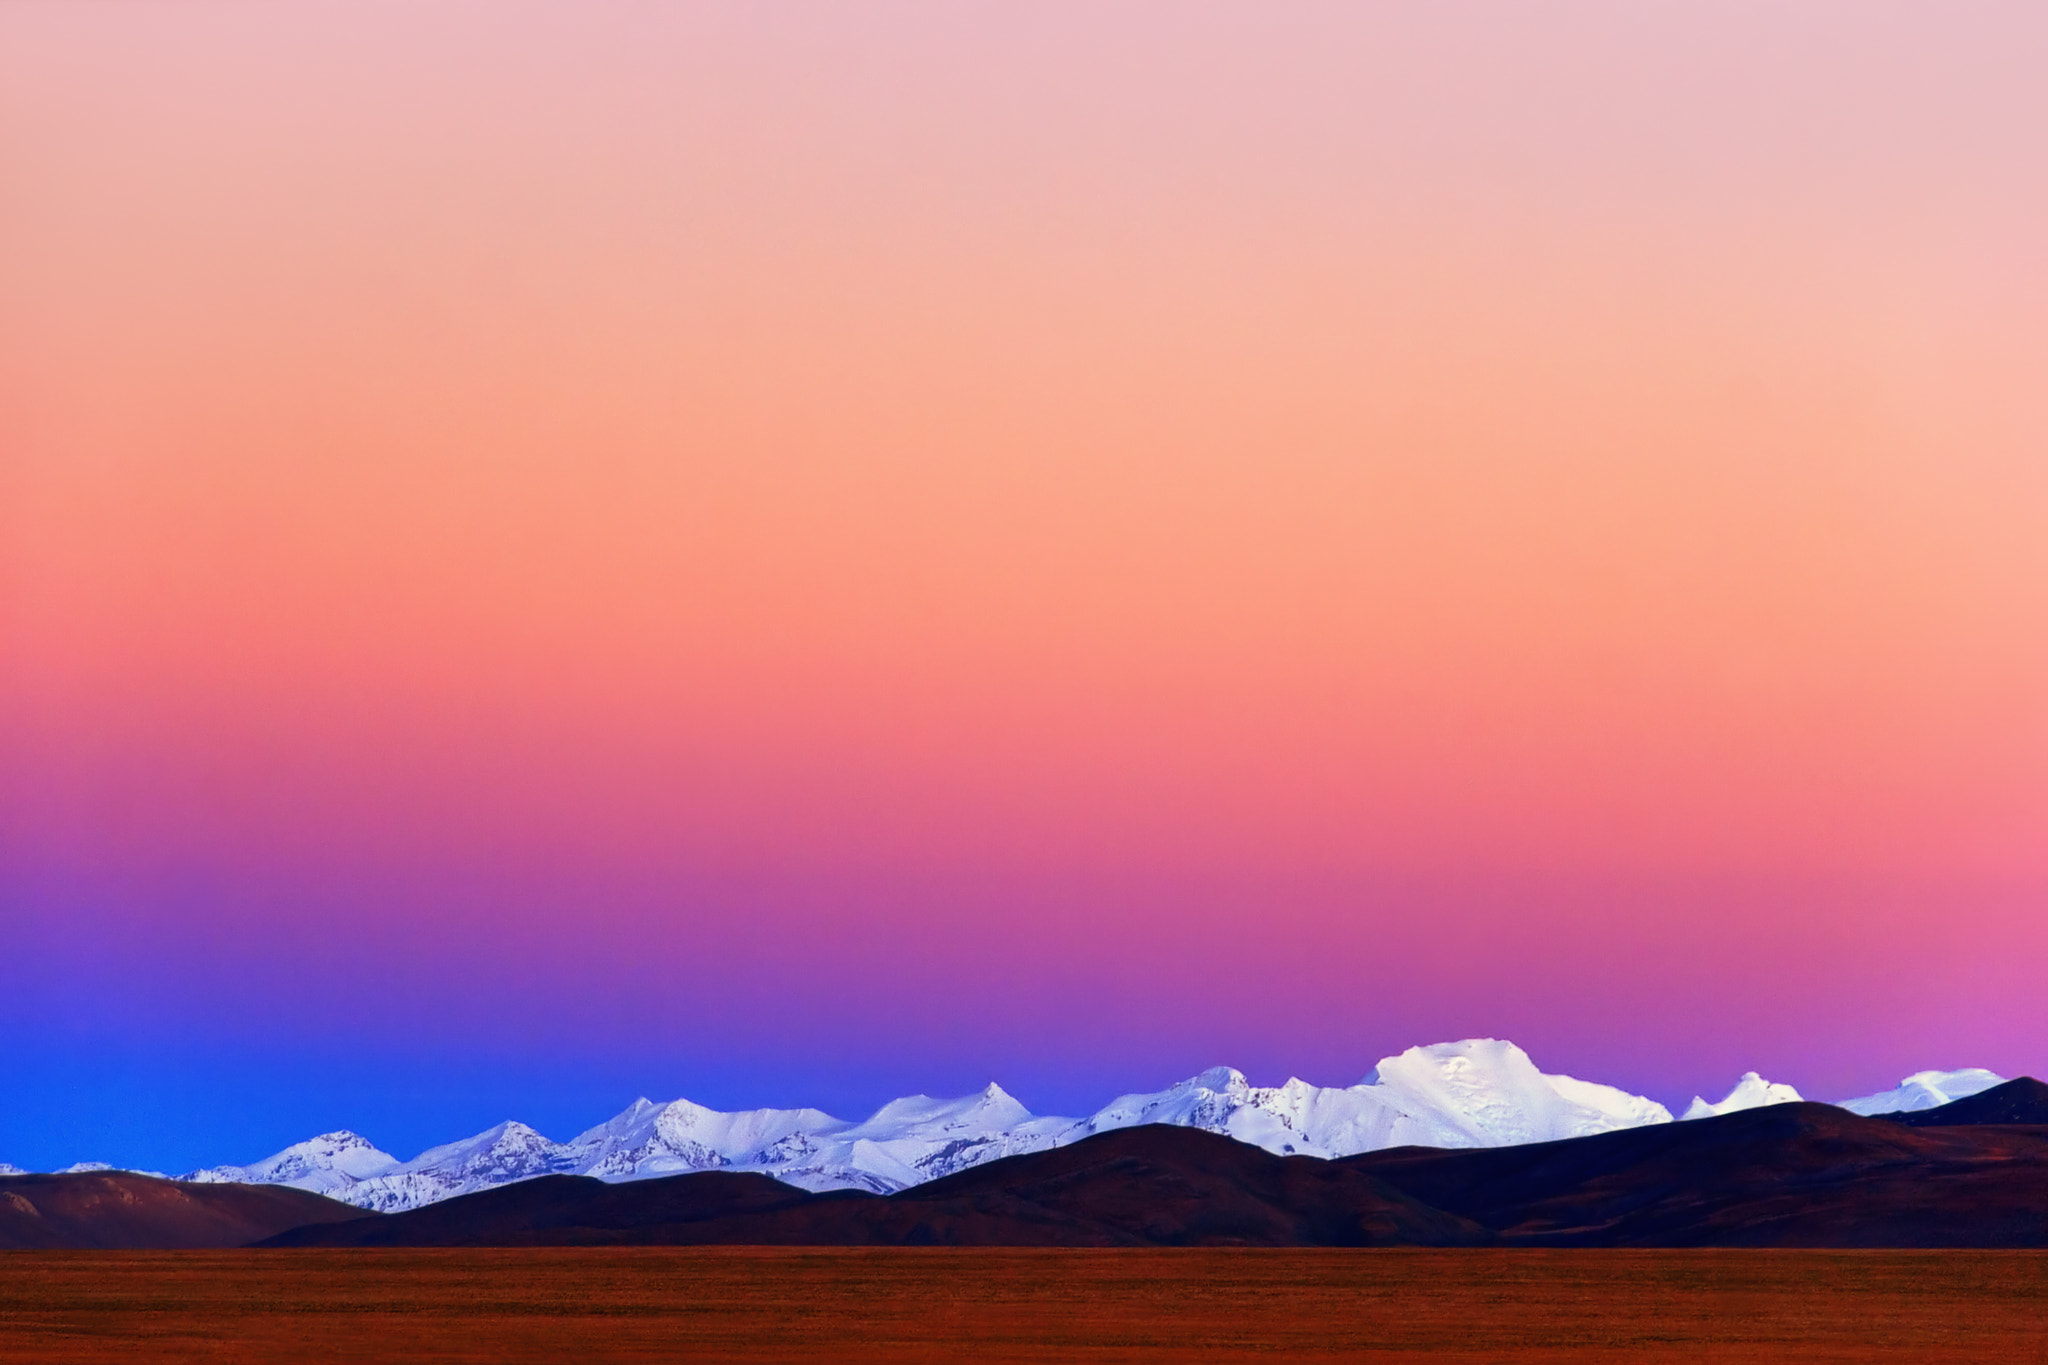 Photograph View of the Himalayas from Tibet by Birukov Yury on 500px